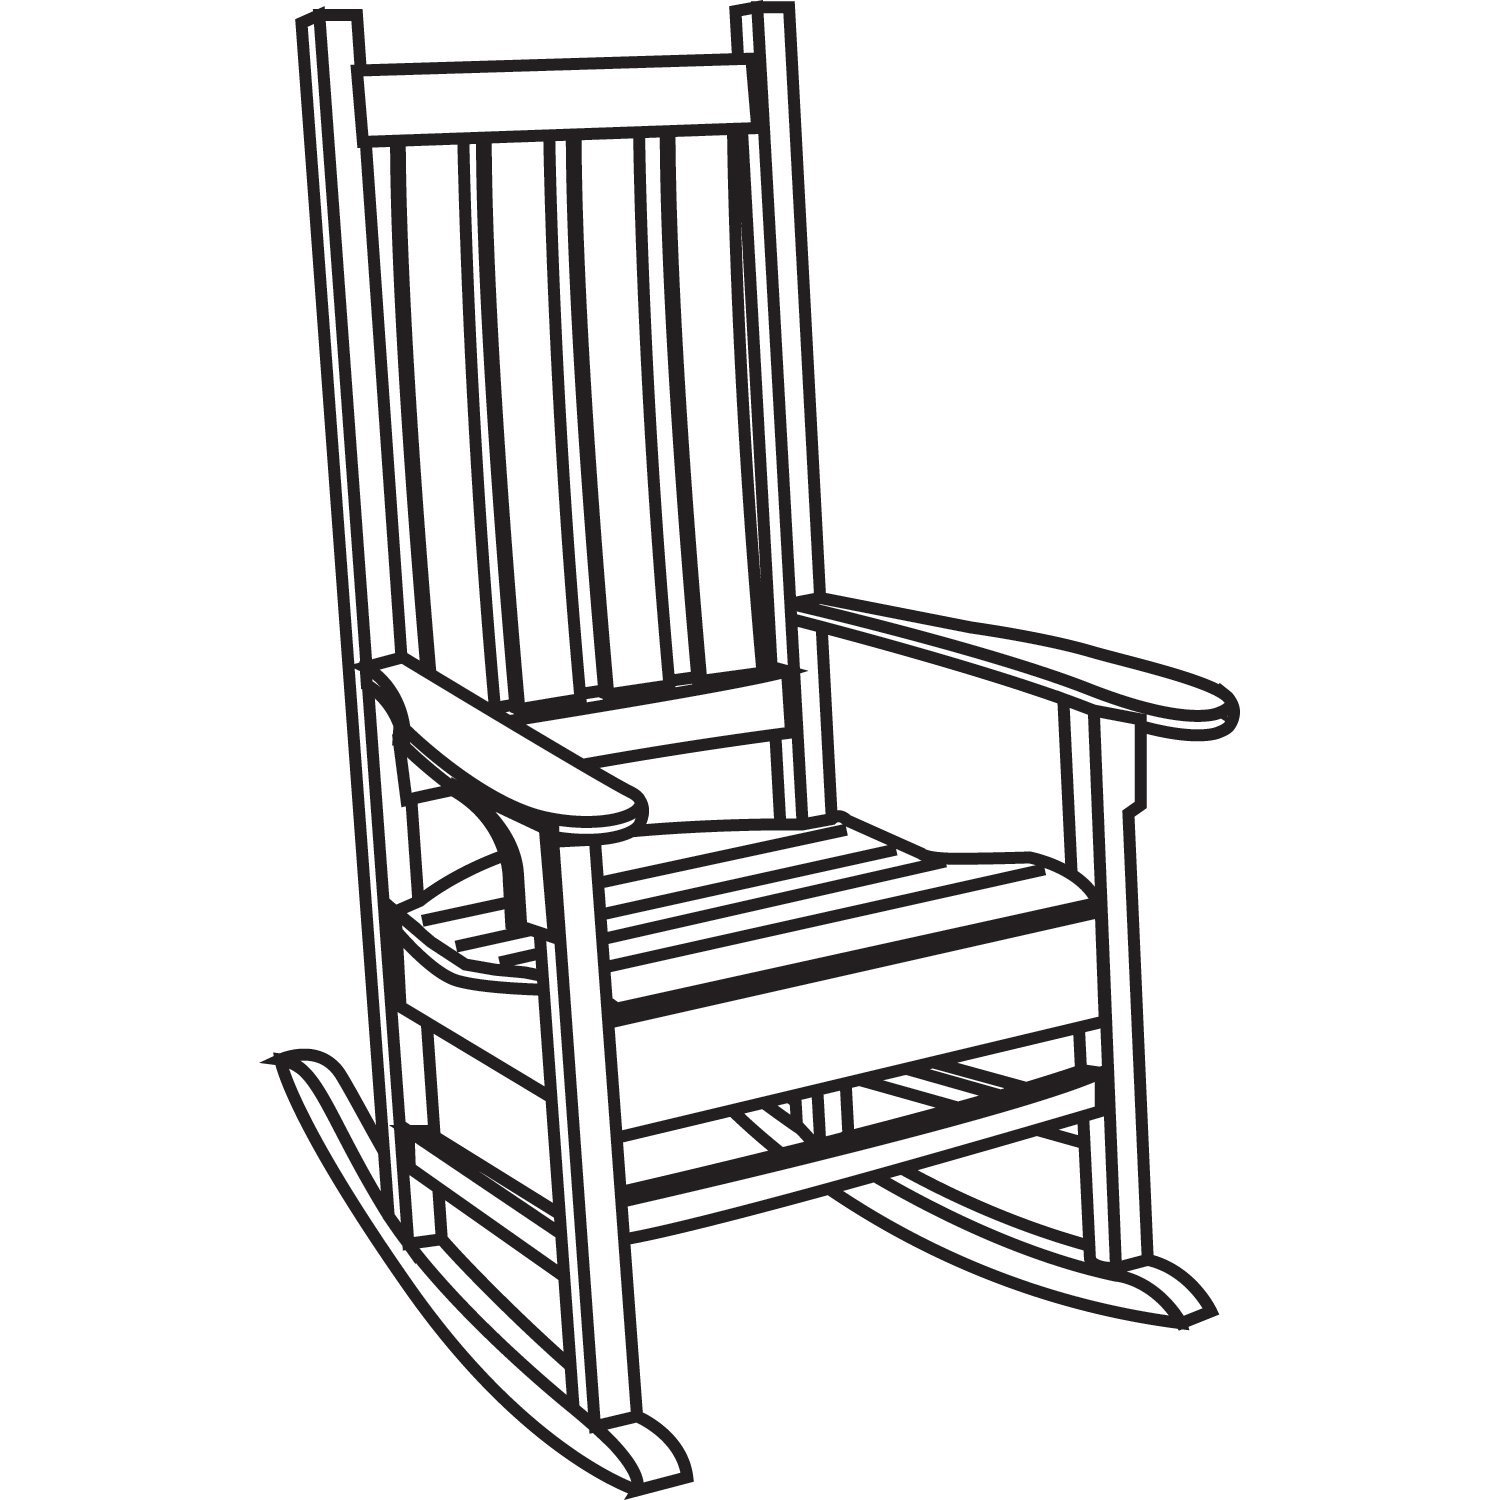 Free Chairperson Cliparts, Download Free Clip Art, Free